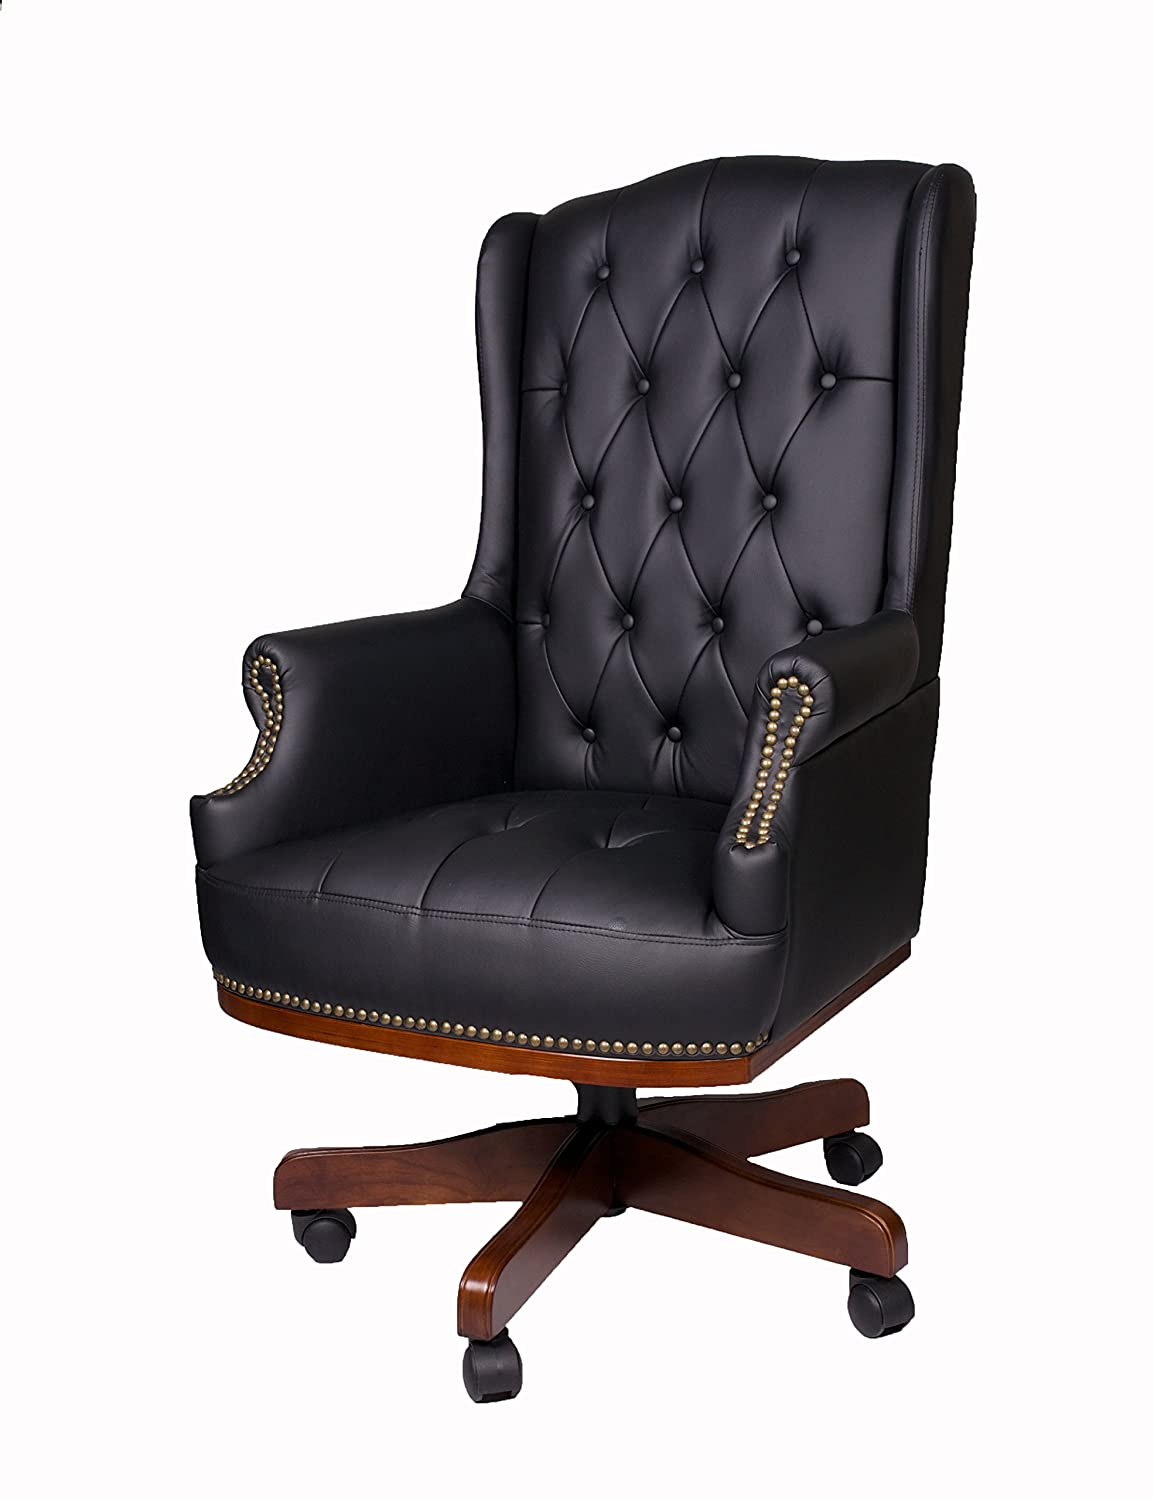 LUXURY MANAGERS DIRECTORS CHESTERFIELD ANTIQUE CAPTAIN STYLE PU LEATHER  OFFICE DESK CHAIR FURNITURE: Amazon.co.uk: Kitchen & Home - LUXURY MANAGERS DIRECTORS CHESTERFIELD ANTIQUE CAPTAIN STYLE PU